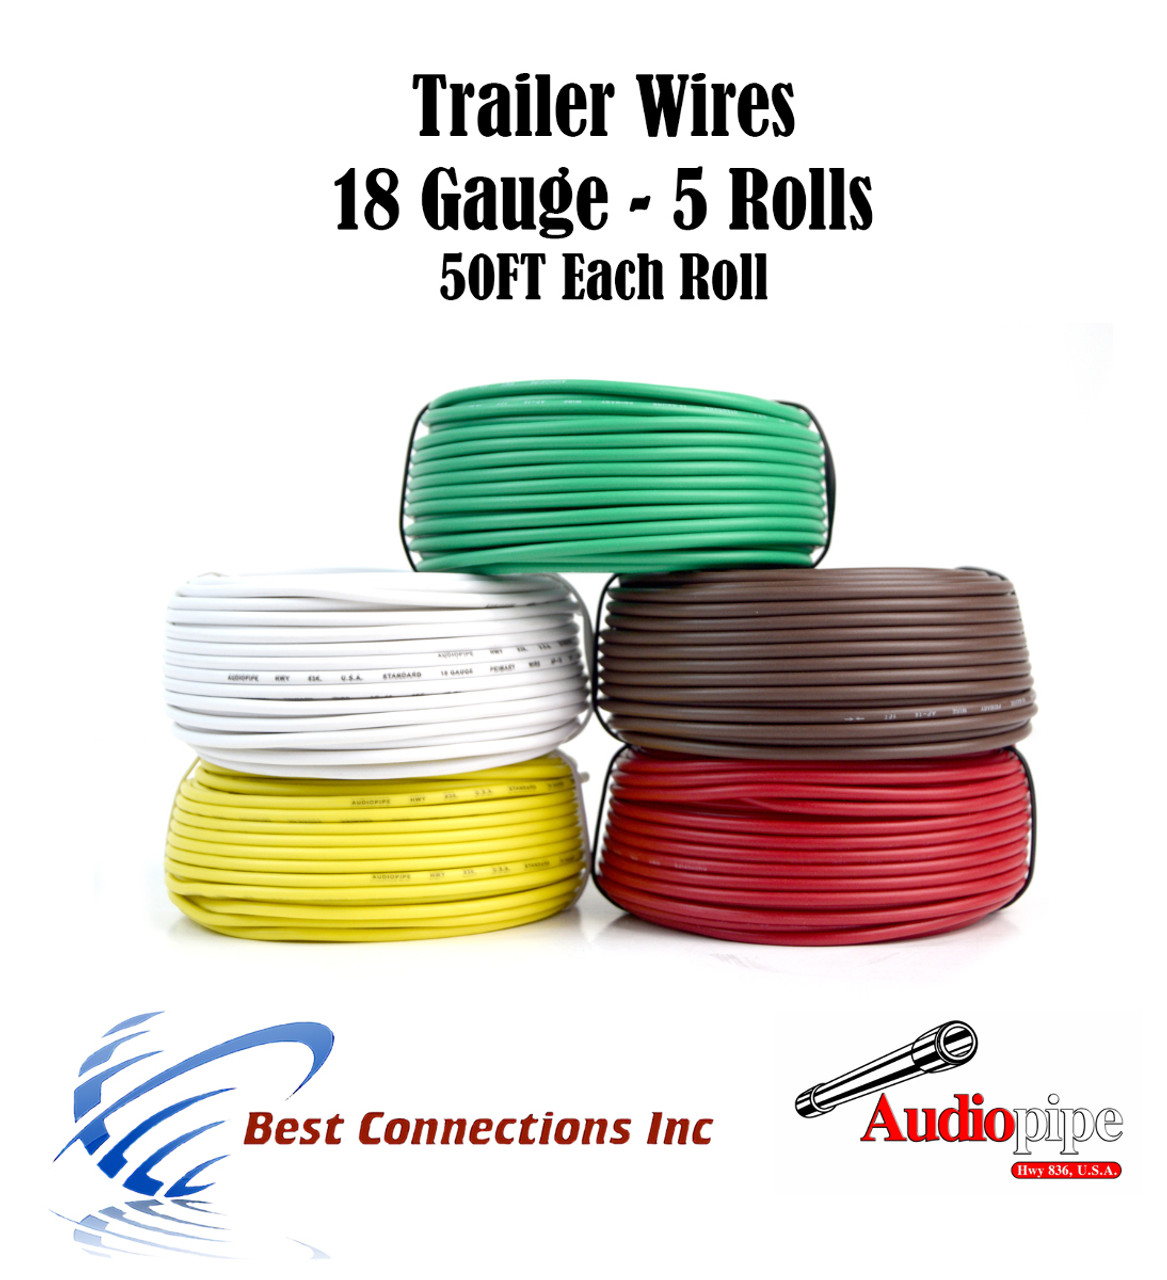 small resolution of 5 way trailer wire light cable for harness led 50ft each roll 18 gauge 5 colors